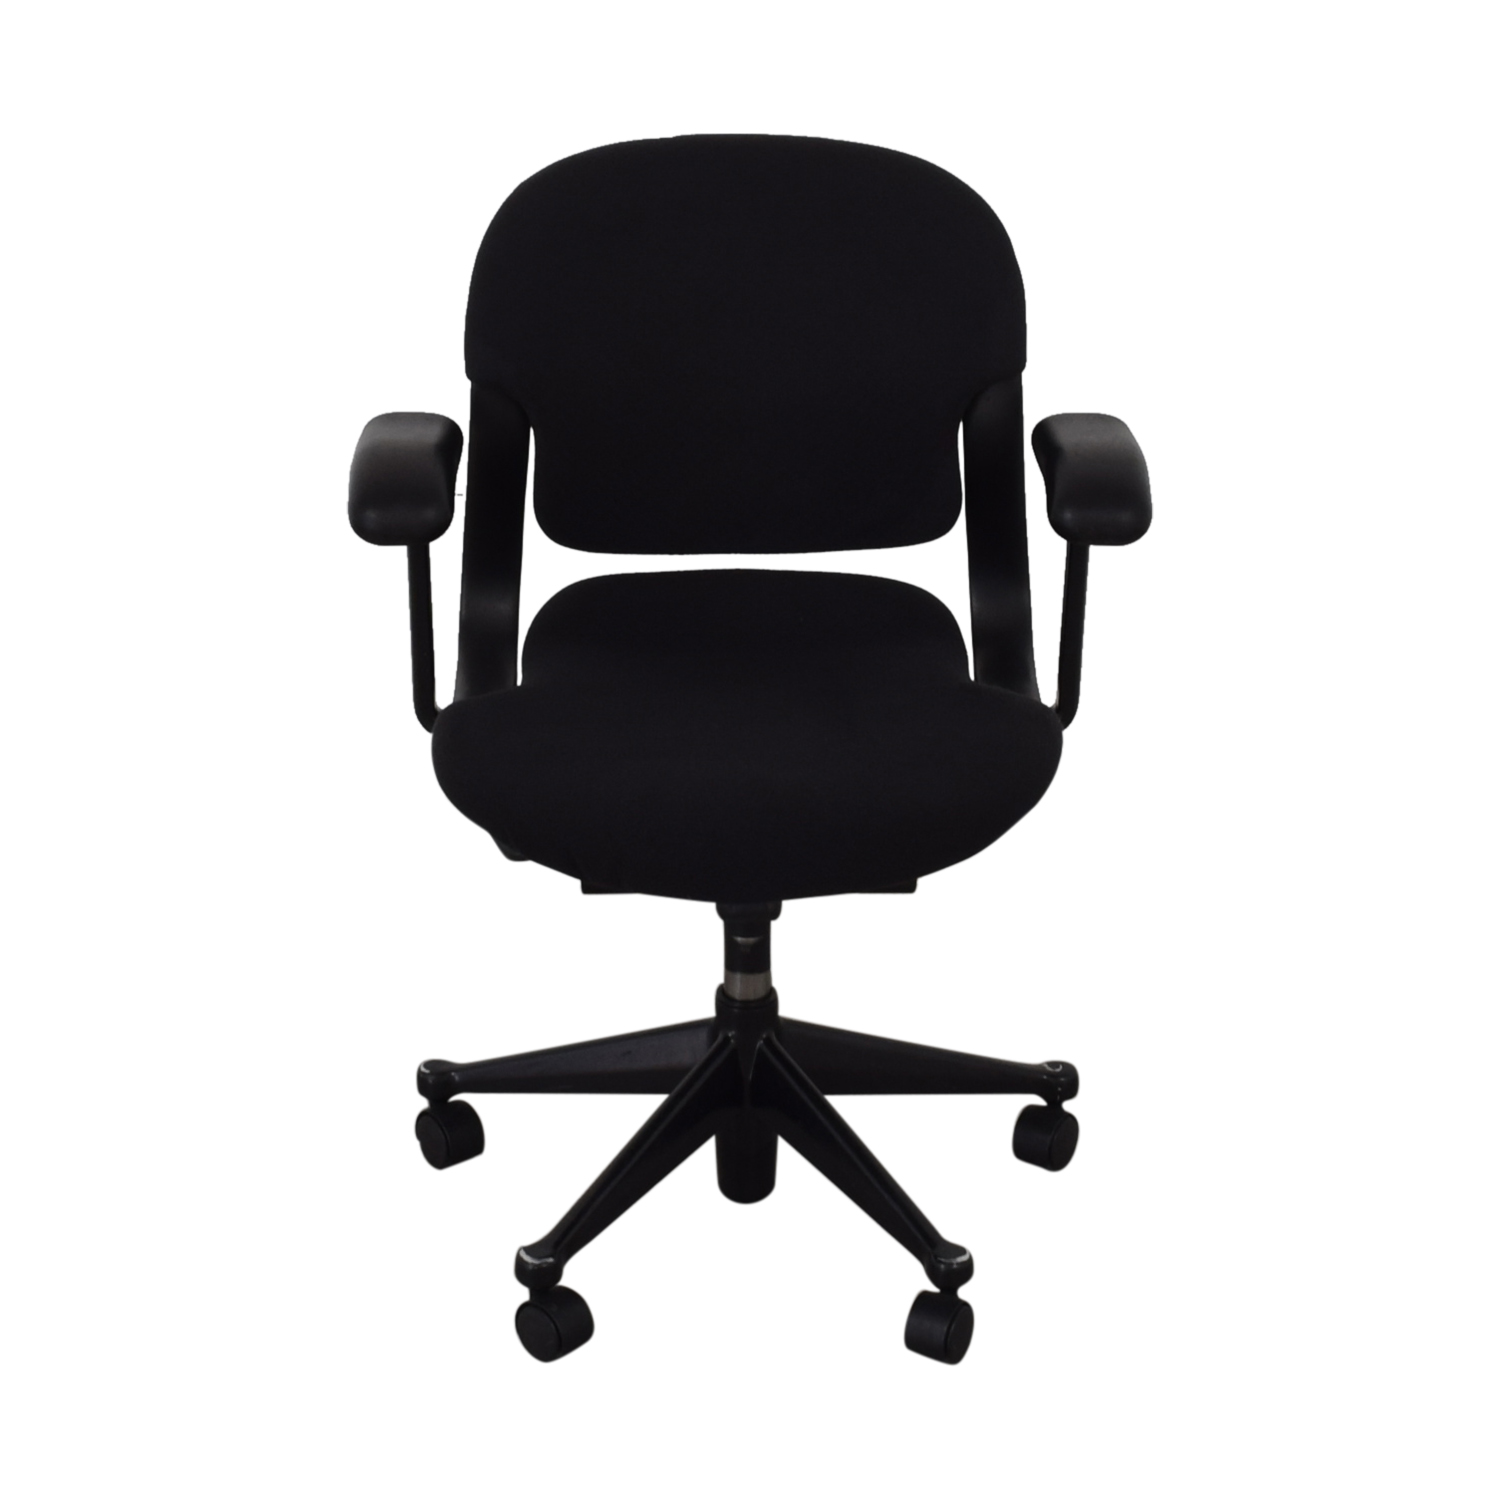 buy Black Office Chair on Castors  Home Office Chairs